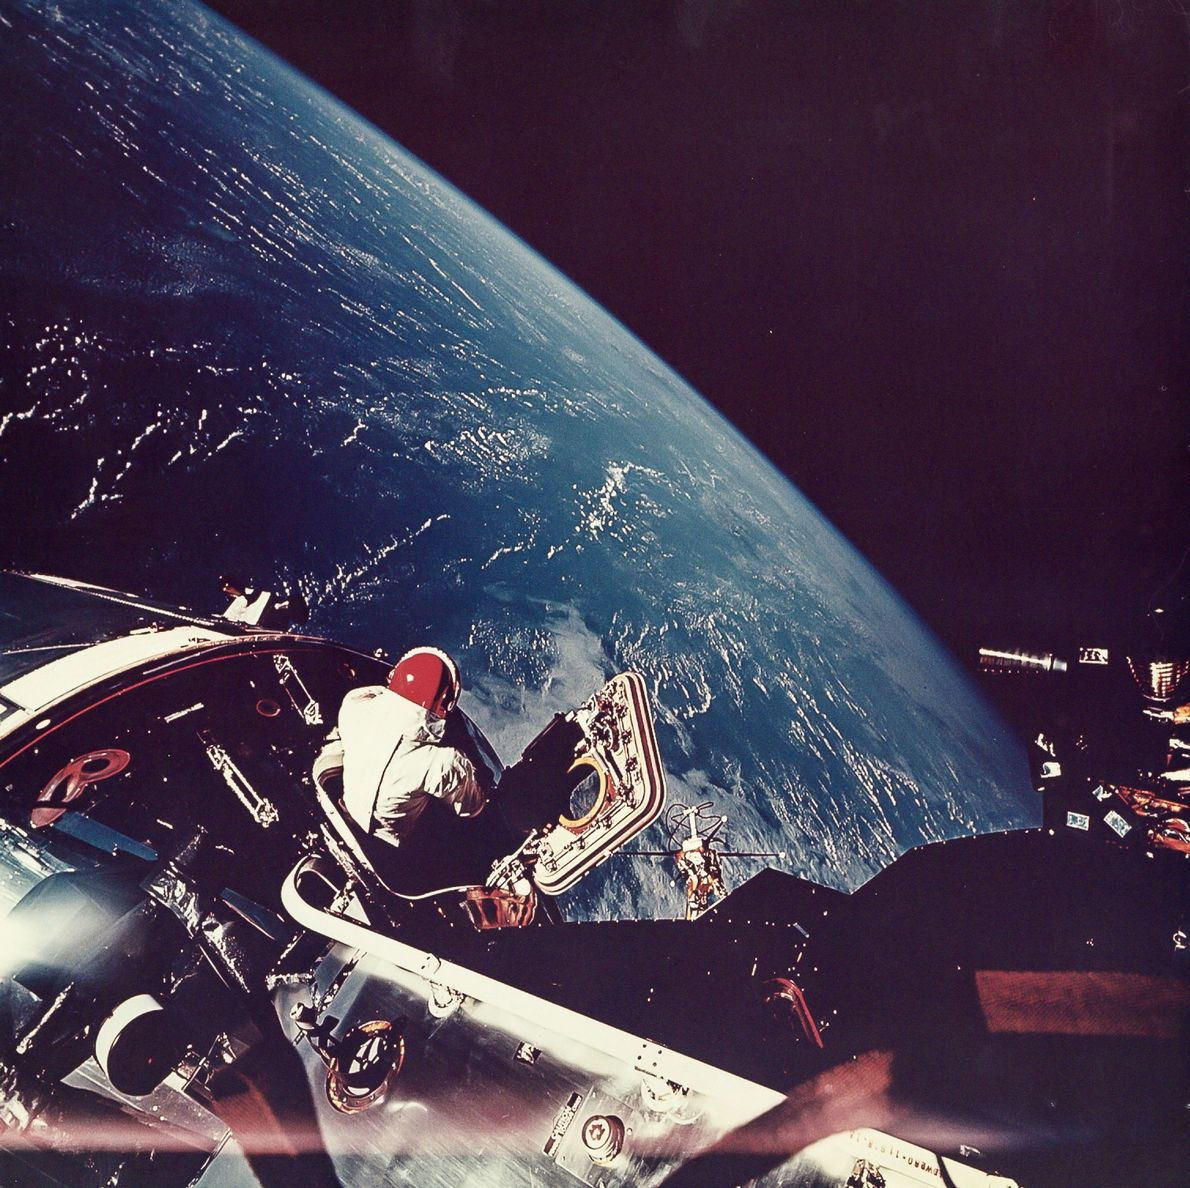 Astronaut Rusty Schweickart took this photo of fellow astronaut David Scott on an Apollo 9 space ...